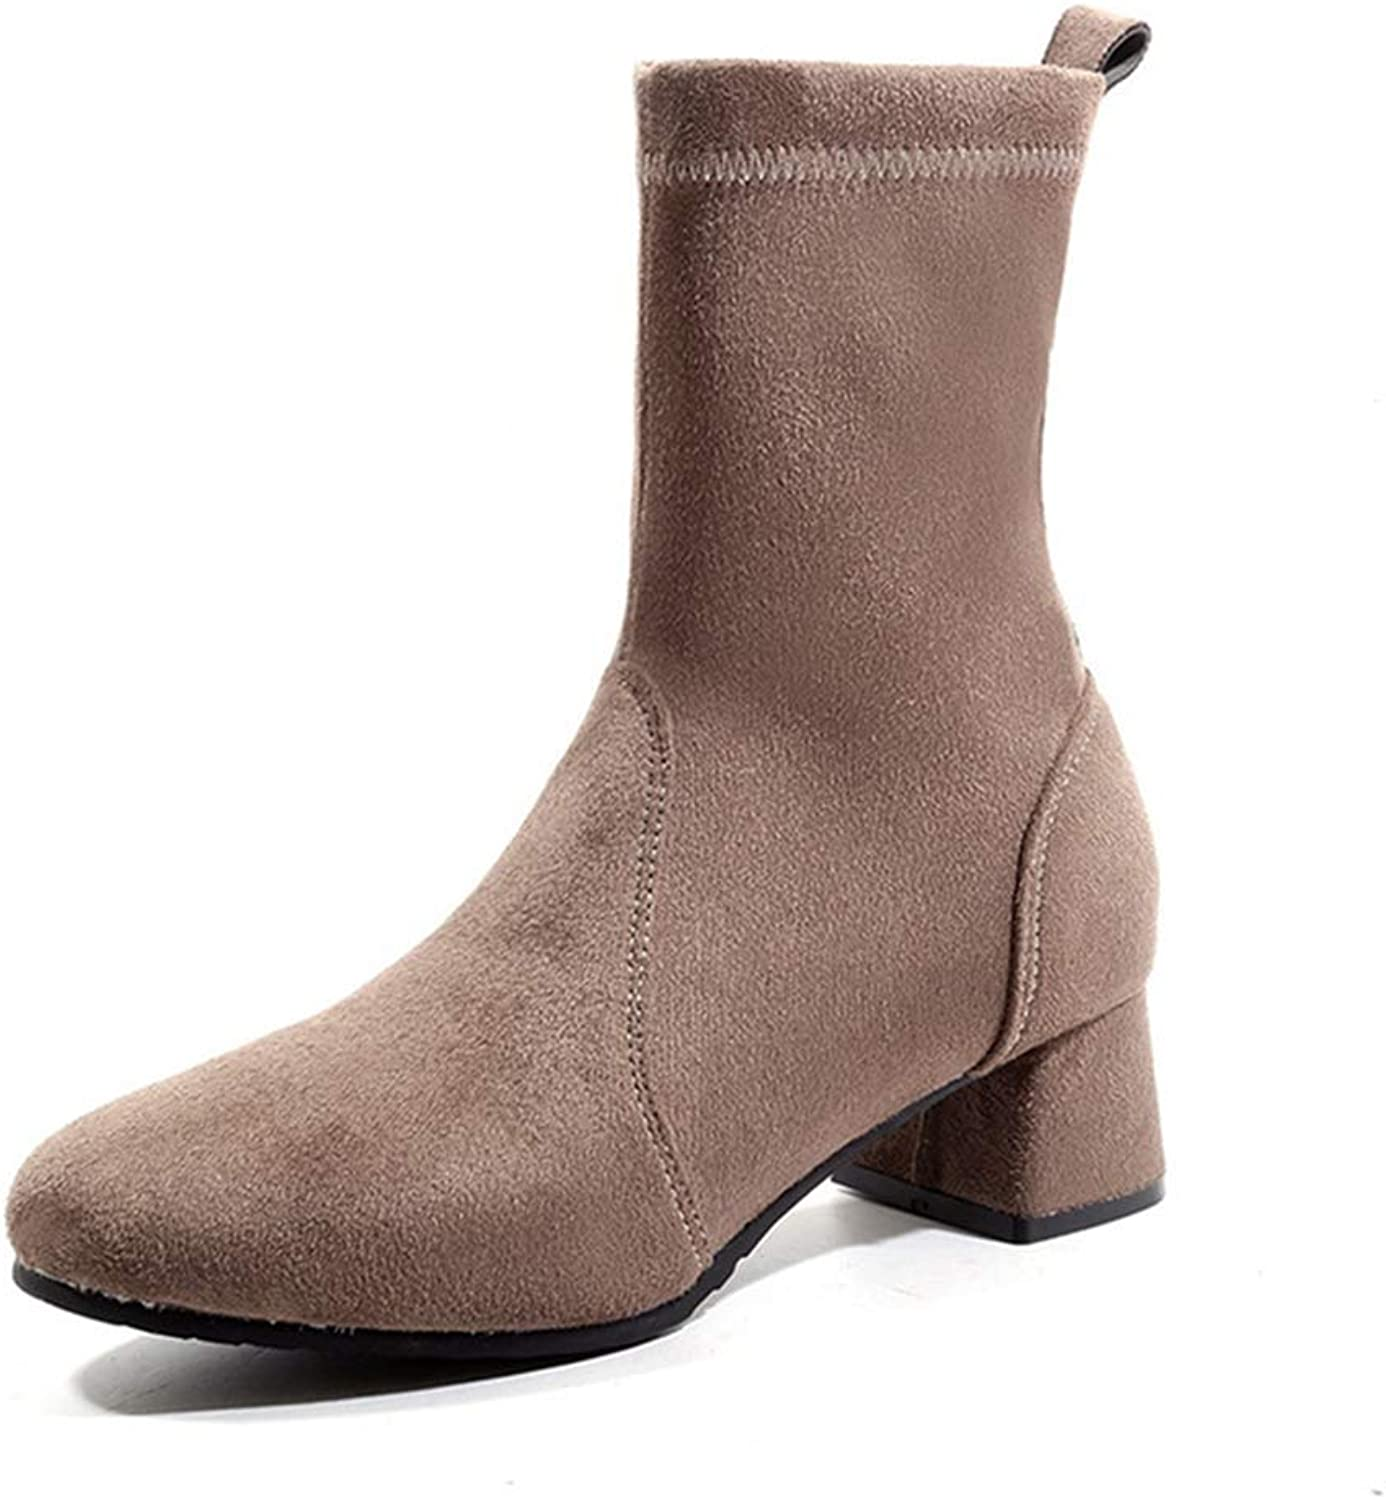 Fashion shoesbox Women's Stretch Ankle Boots Vegan Suede Square Toe Pull On Booties Comfort Mid Block Heel Short Boots